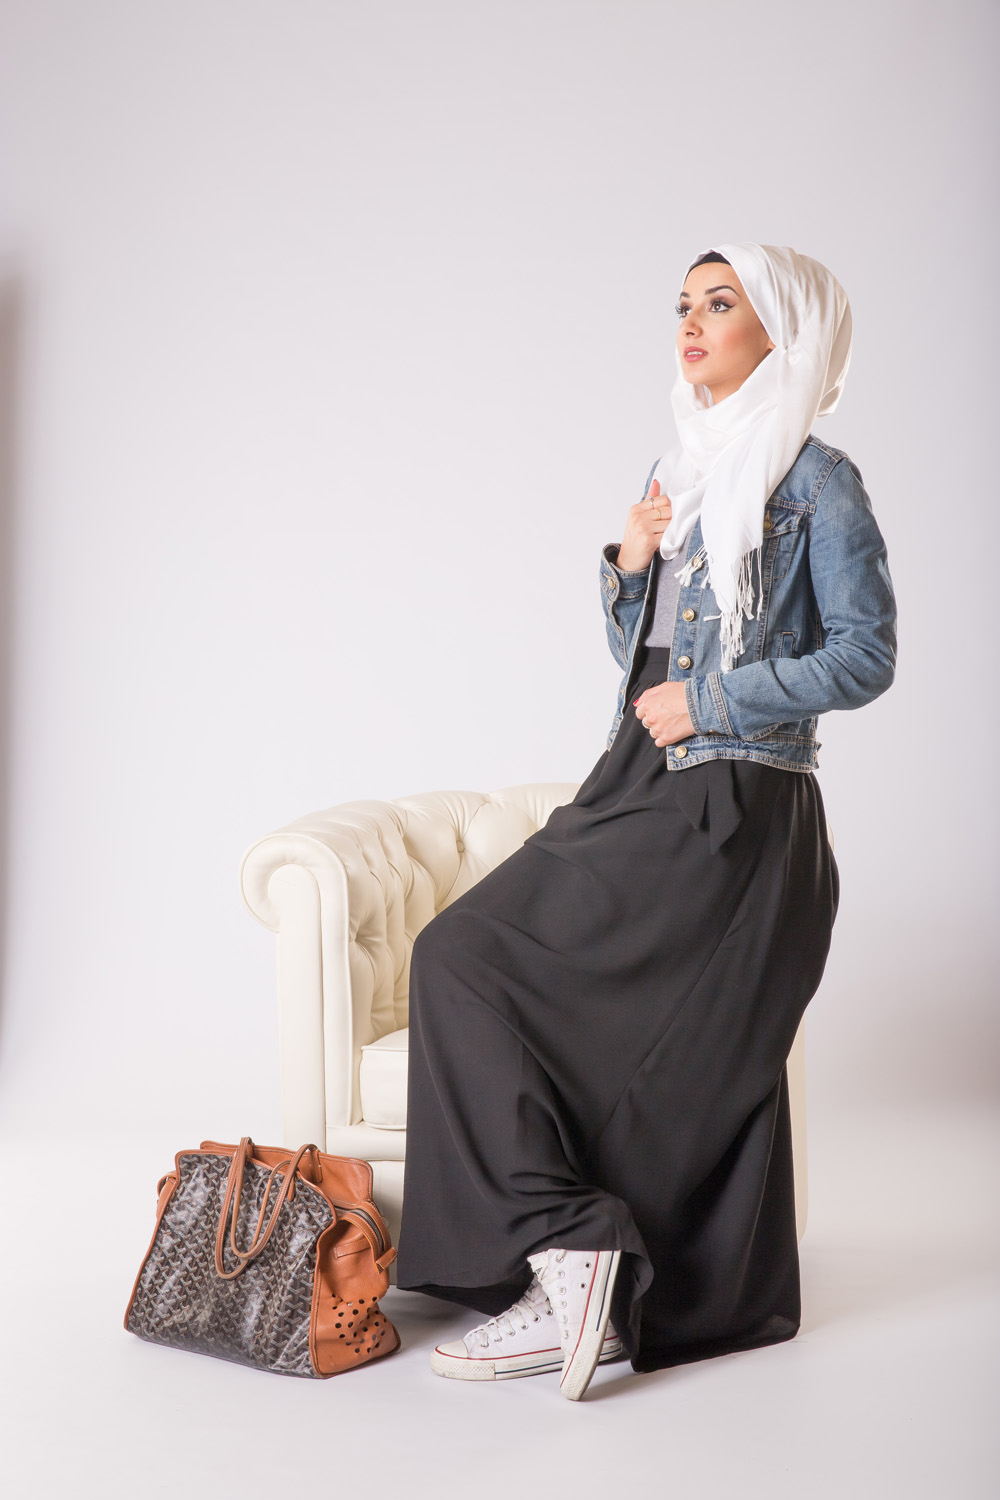 De Co Chicamp; ModestyBoutique And Islamique Diy Mode Jasmine doWBCrex